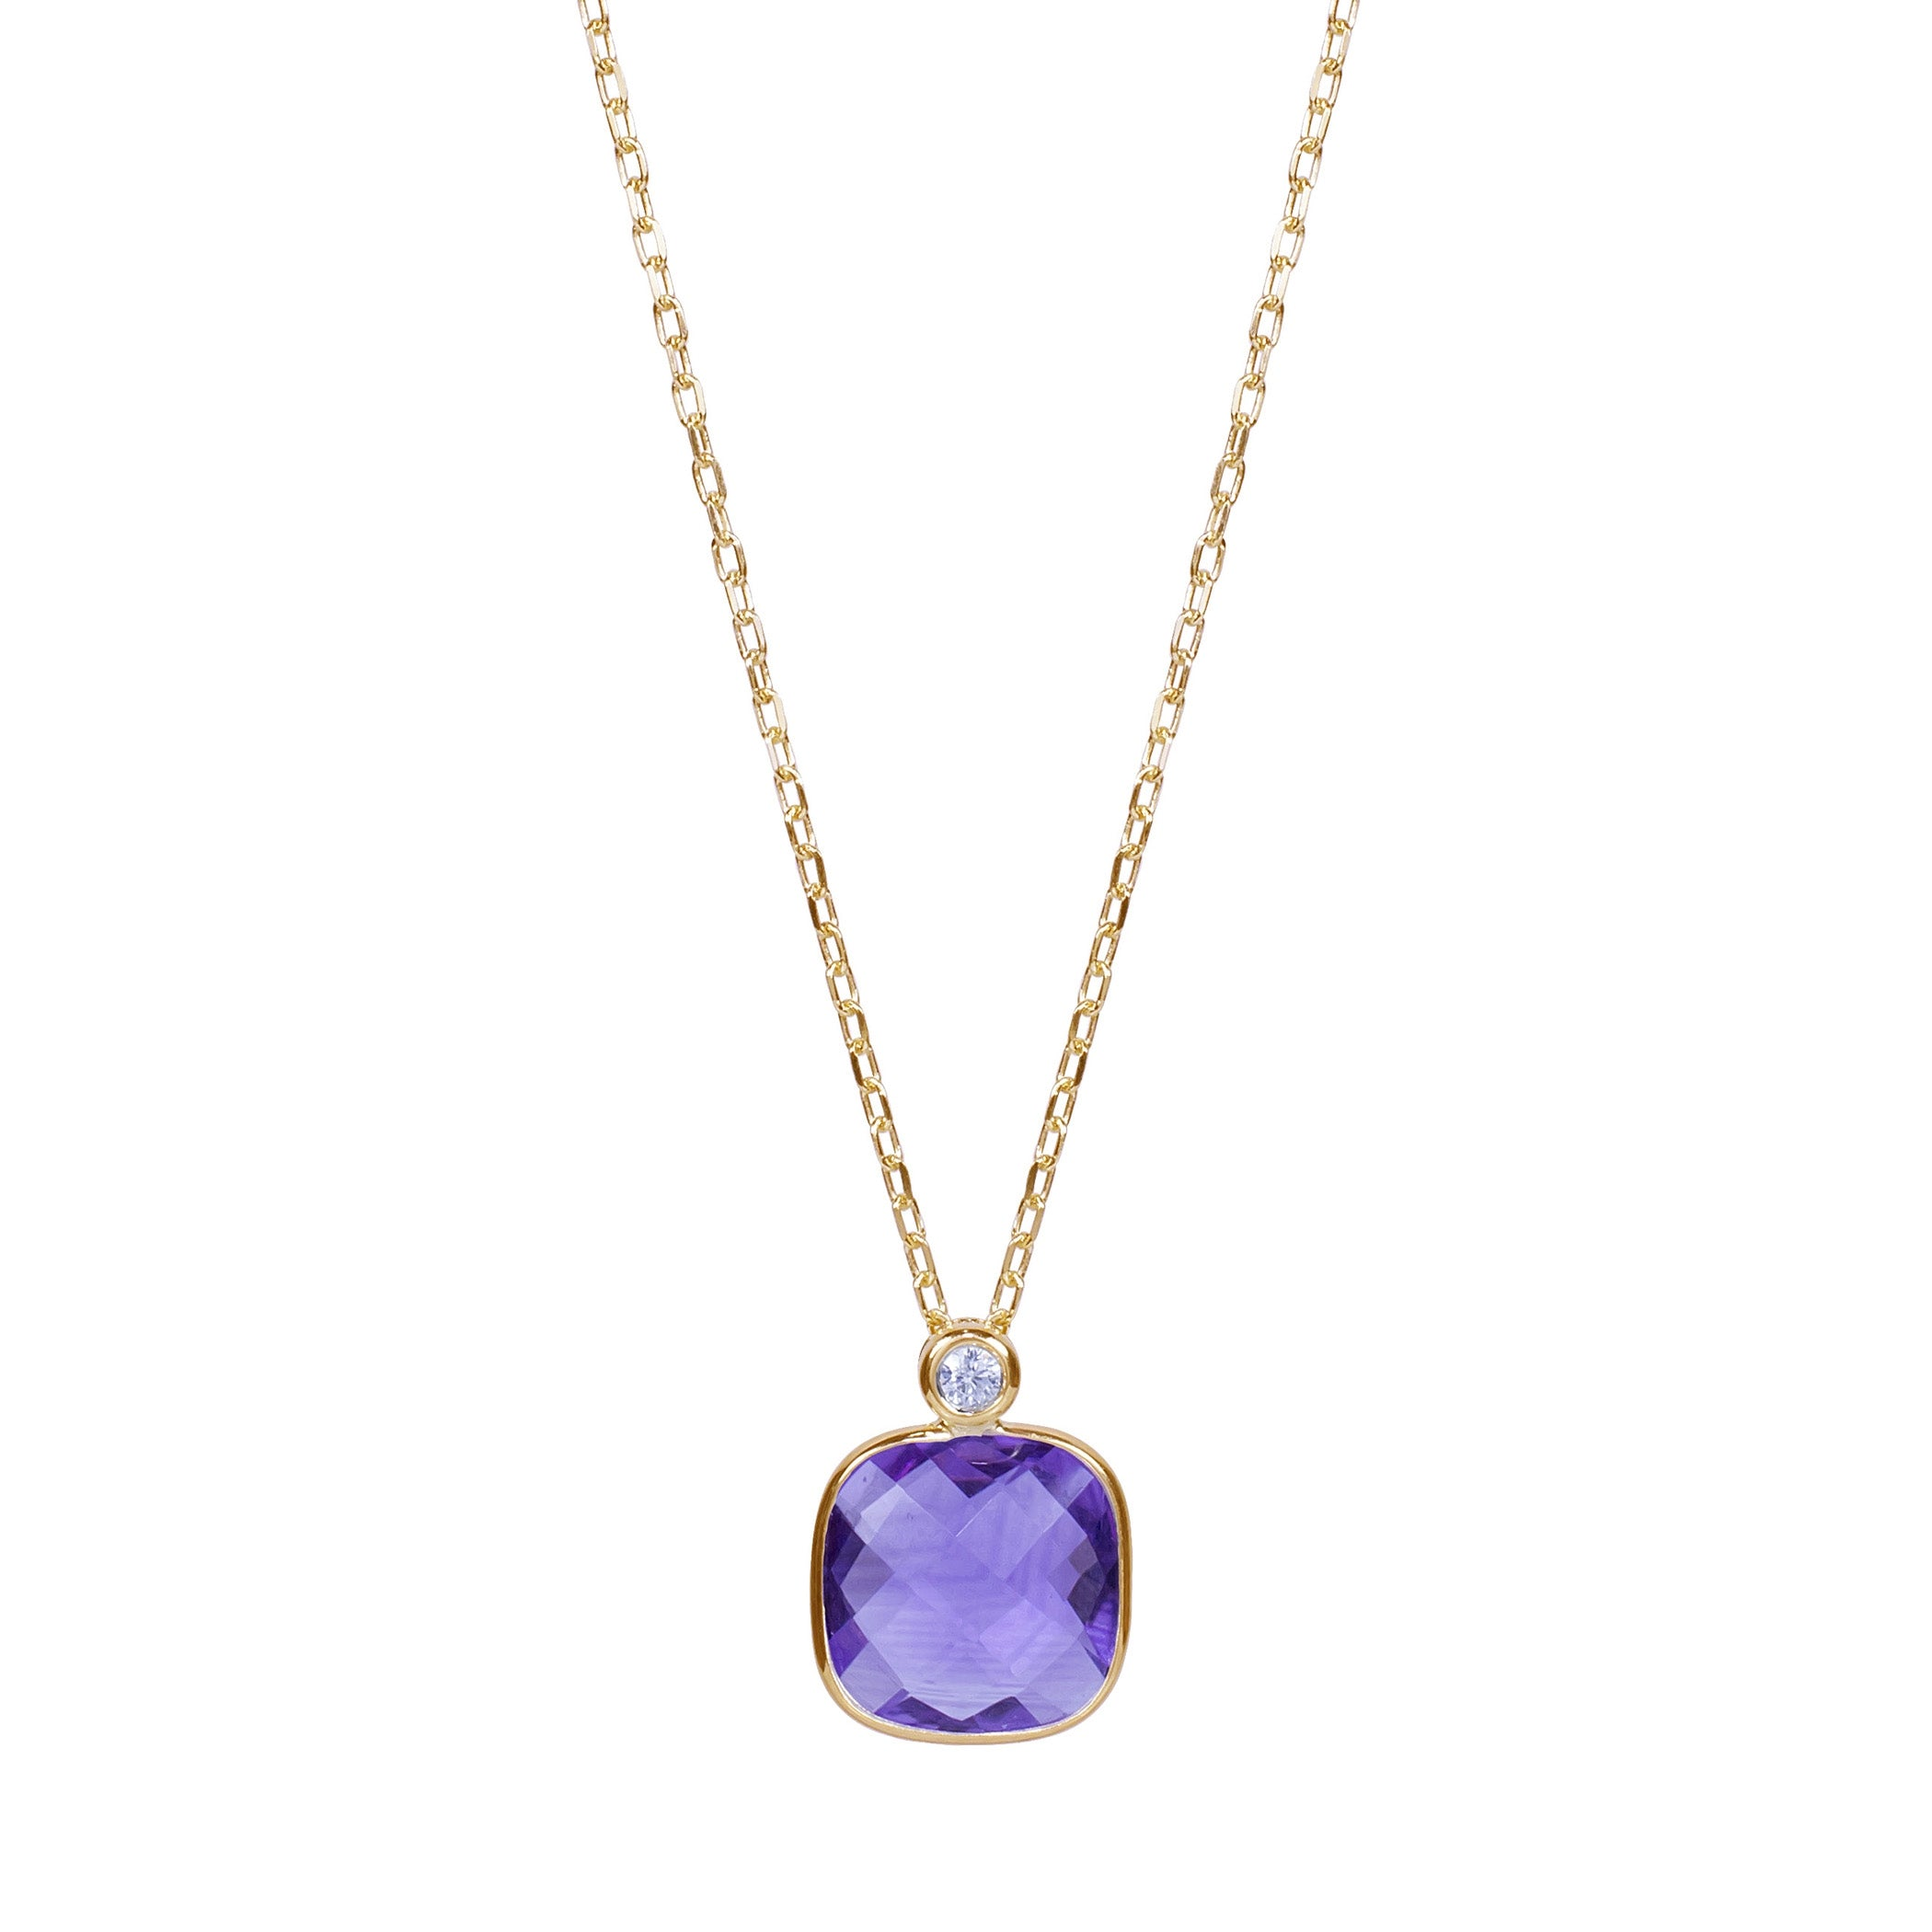 Cushion Cut Amethyst Pendant with Diamond Accent, 14K Yellow Gold